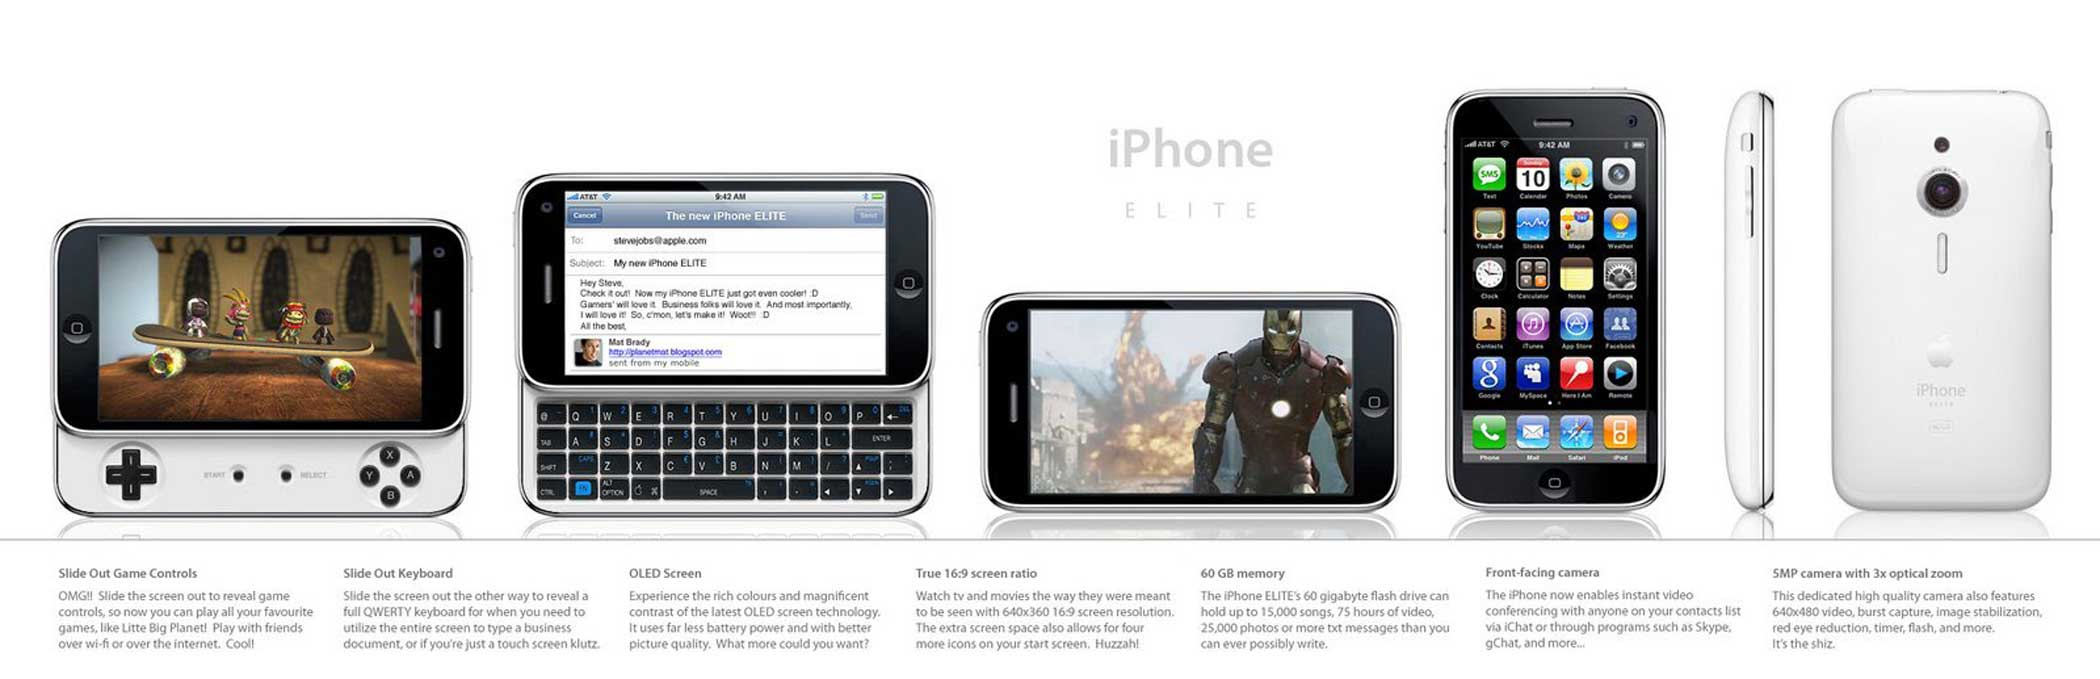 2008: iPhone Elite A sliding panel would allow for this iPhone to have a keyboard or game controls.